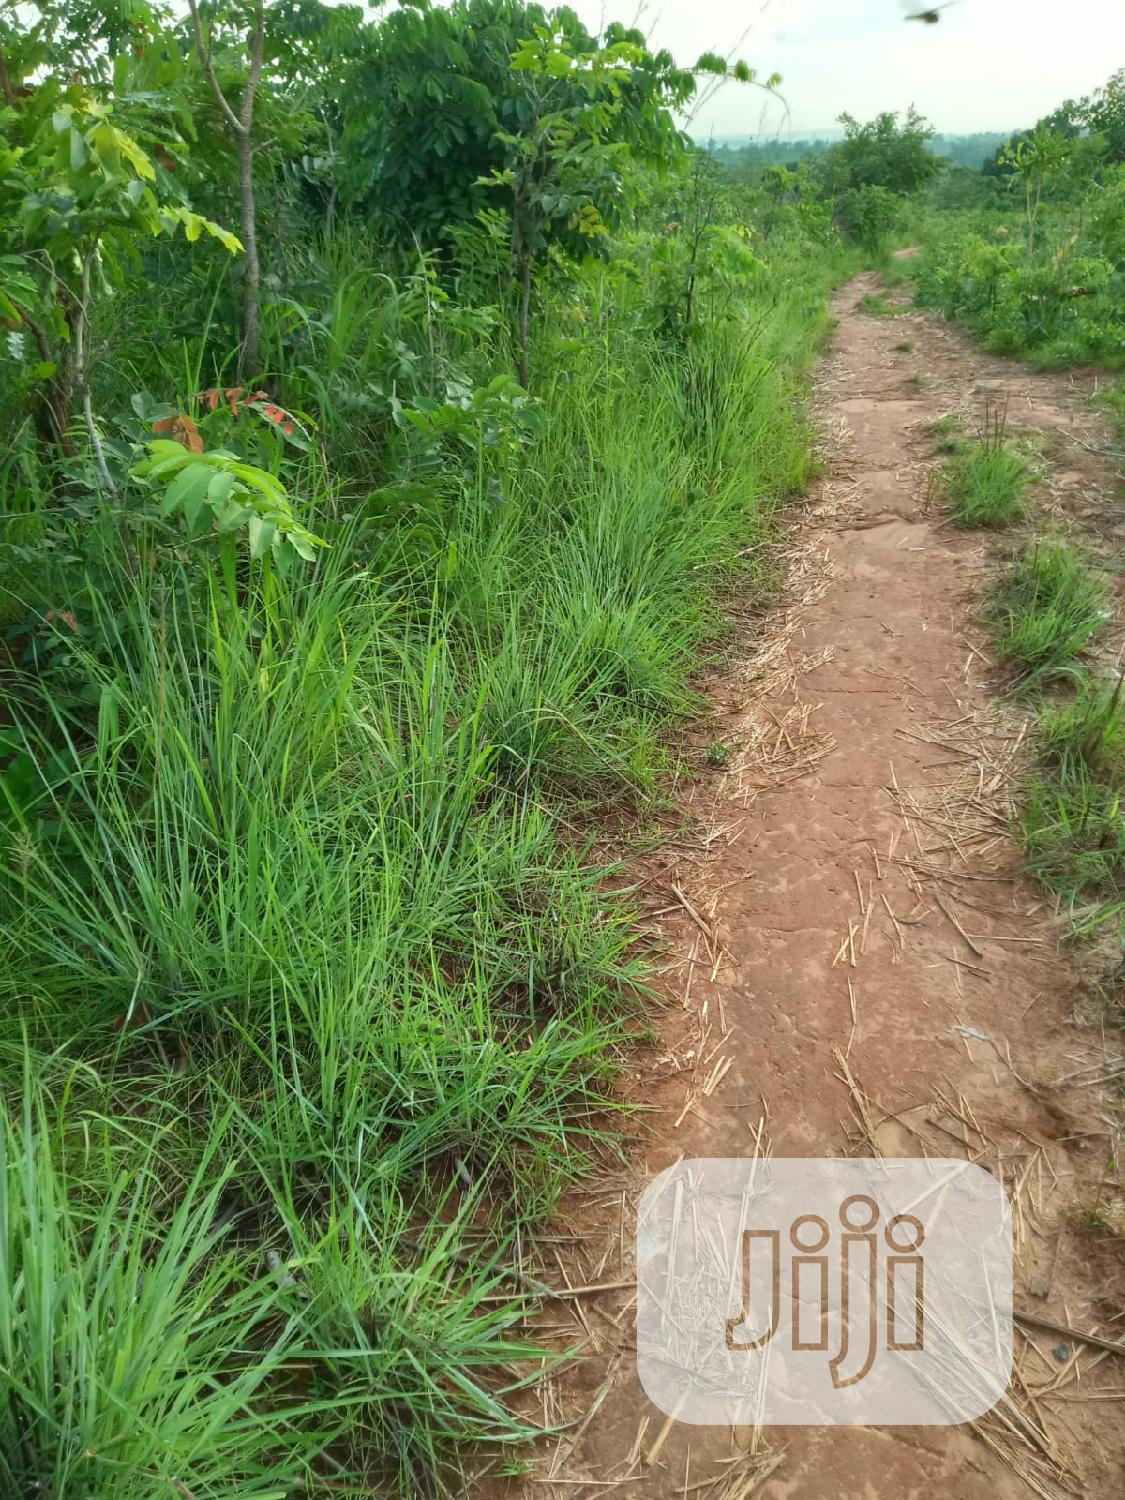 At Achalla Awka 200 Plots of Land for Sale Melekh Olam Consultium